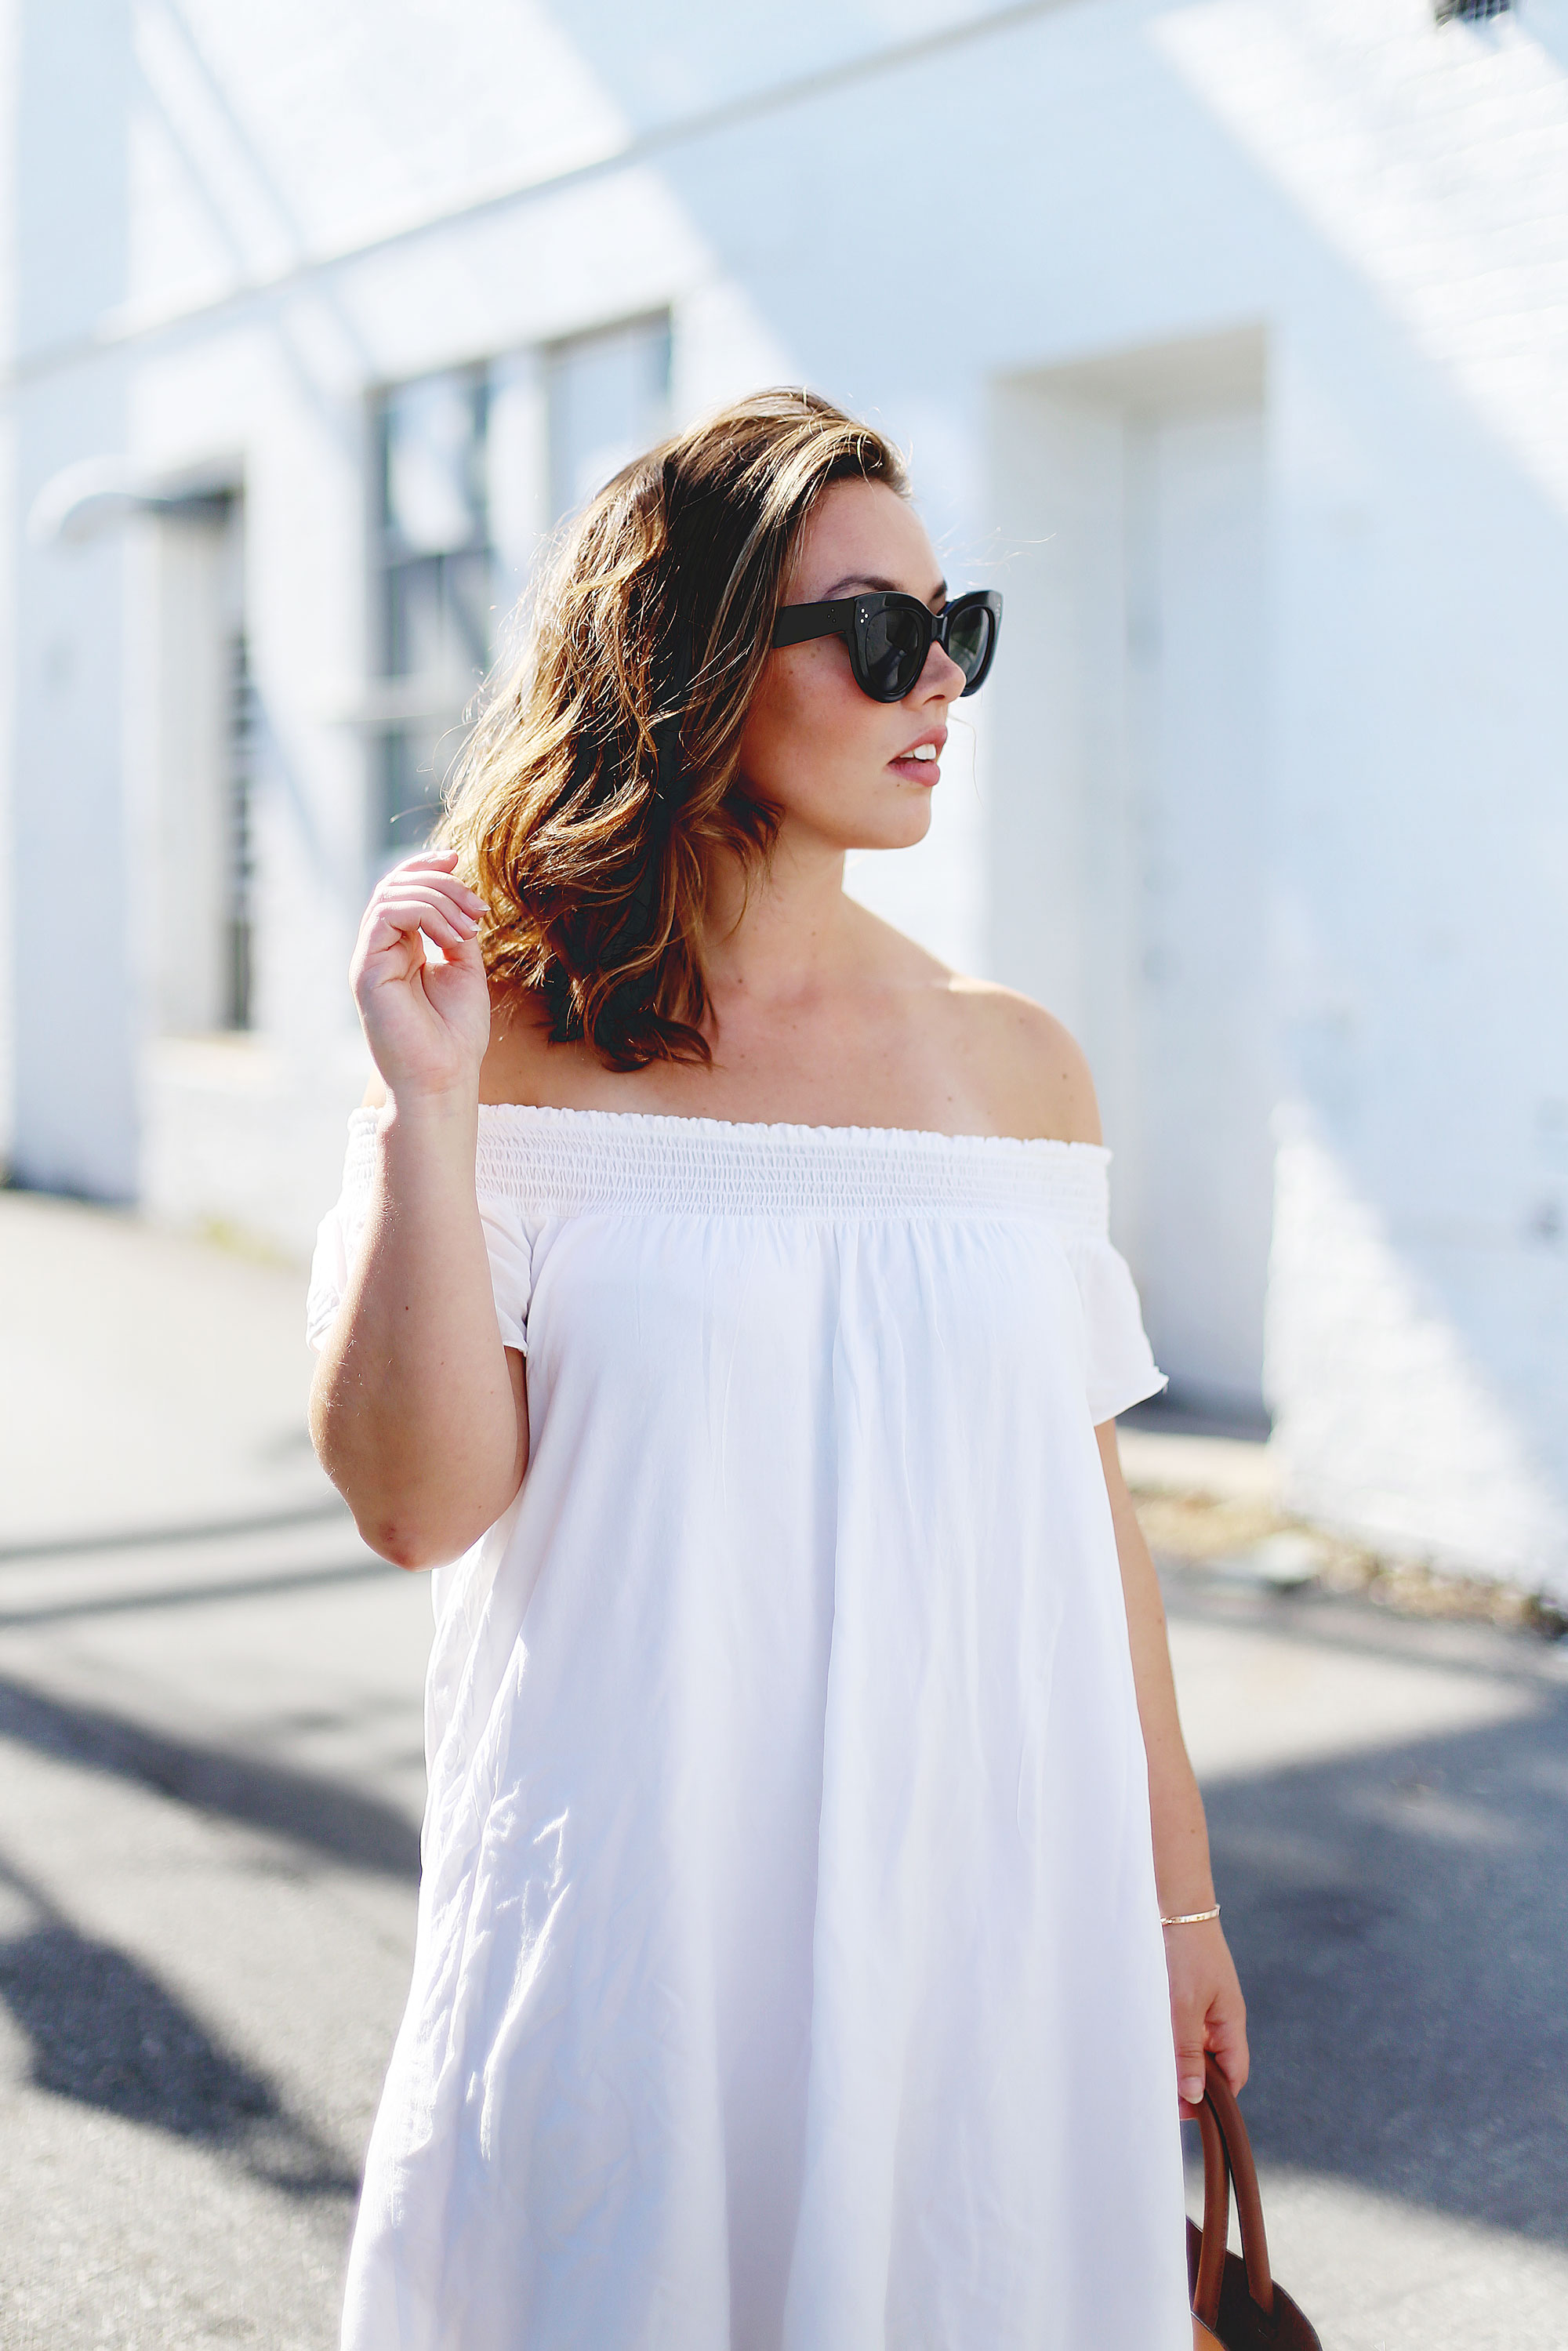 Off the shoulder dress styling